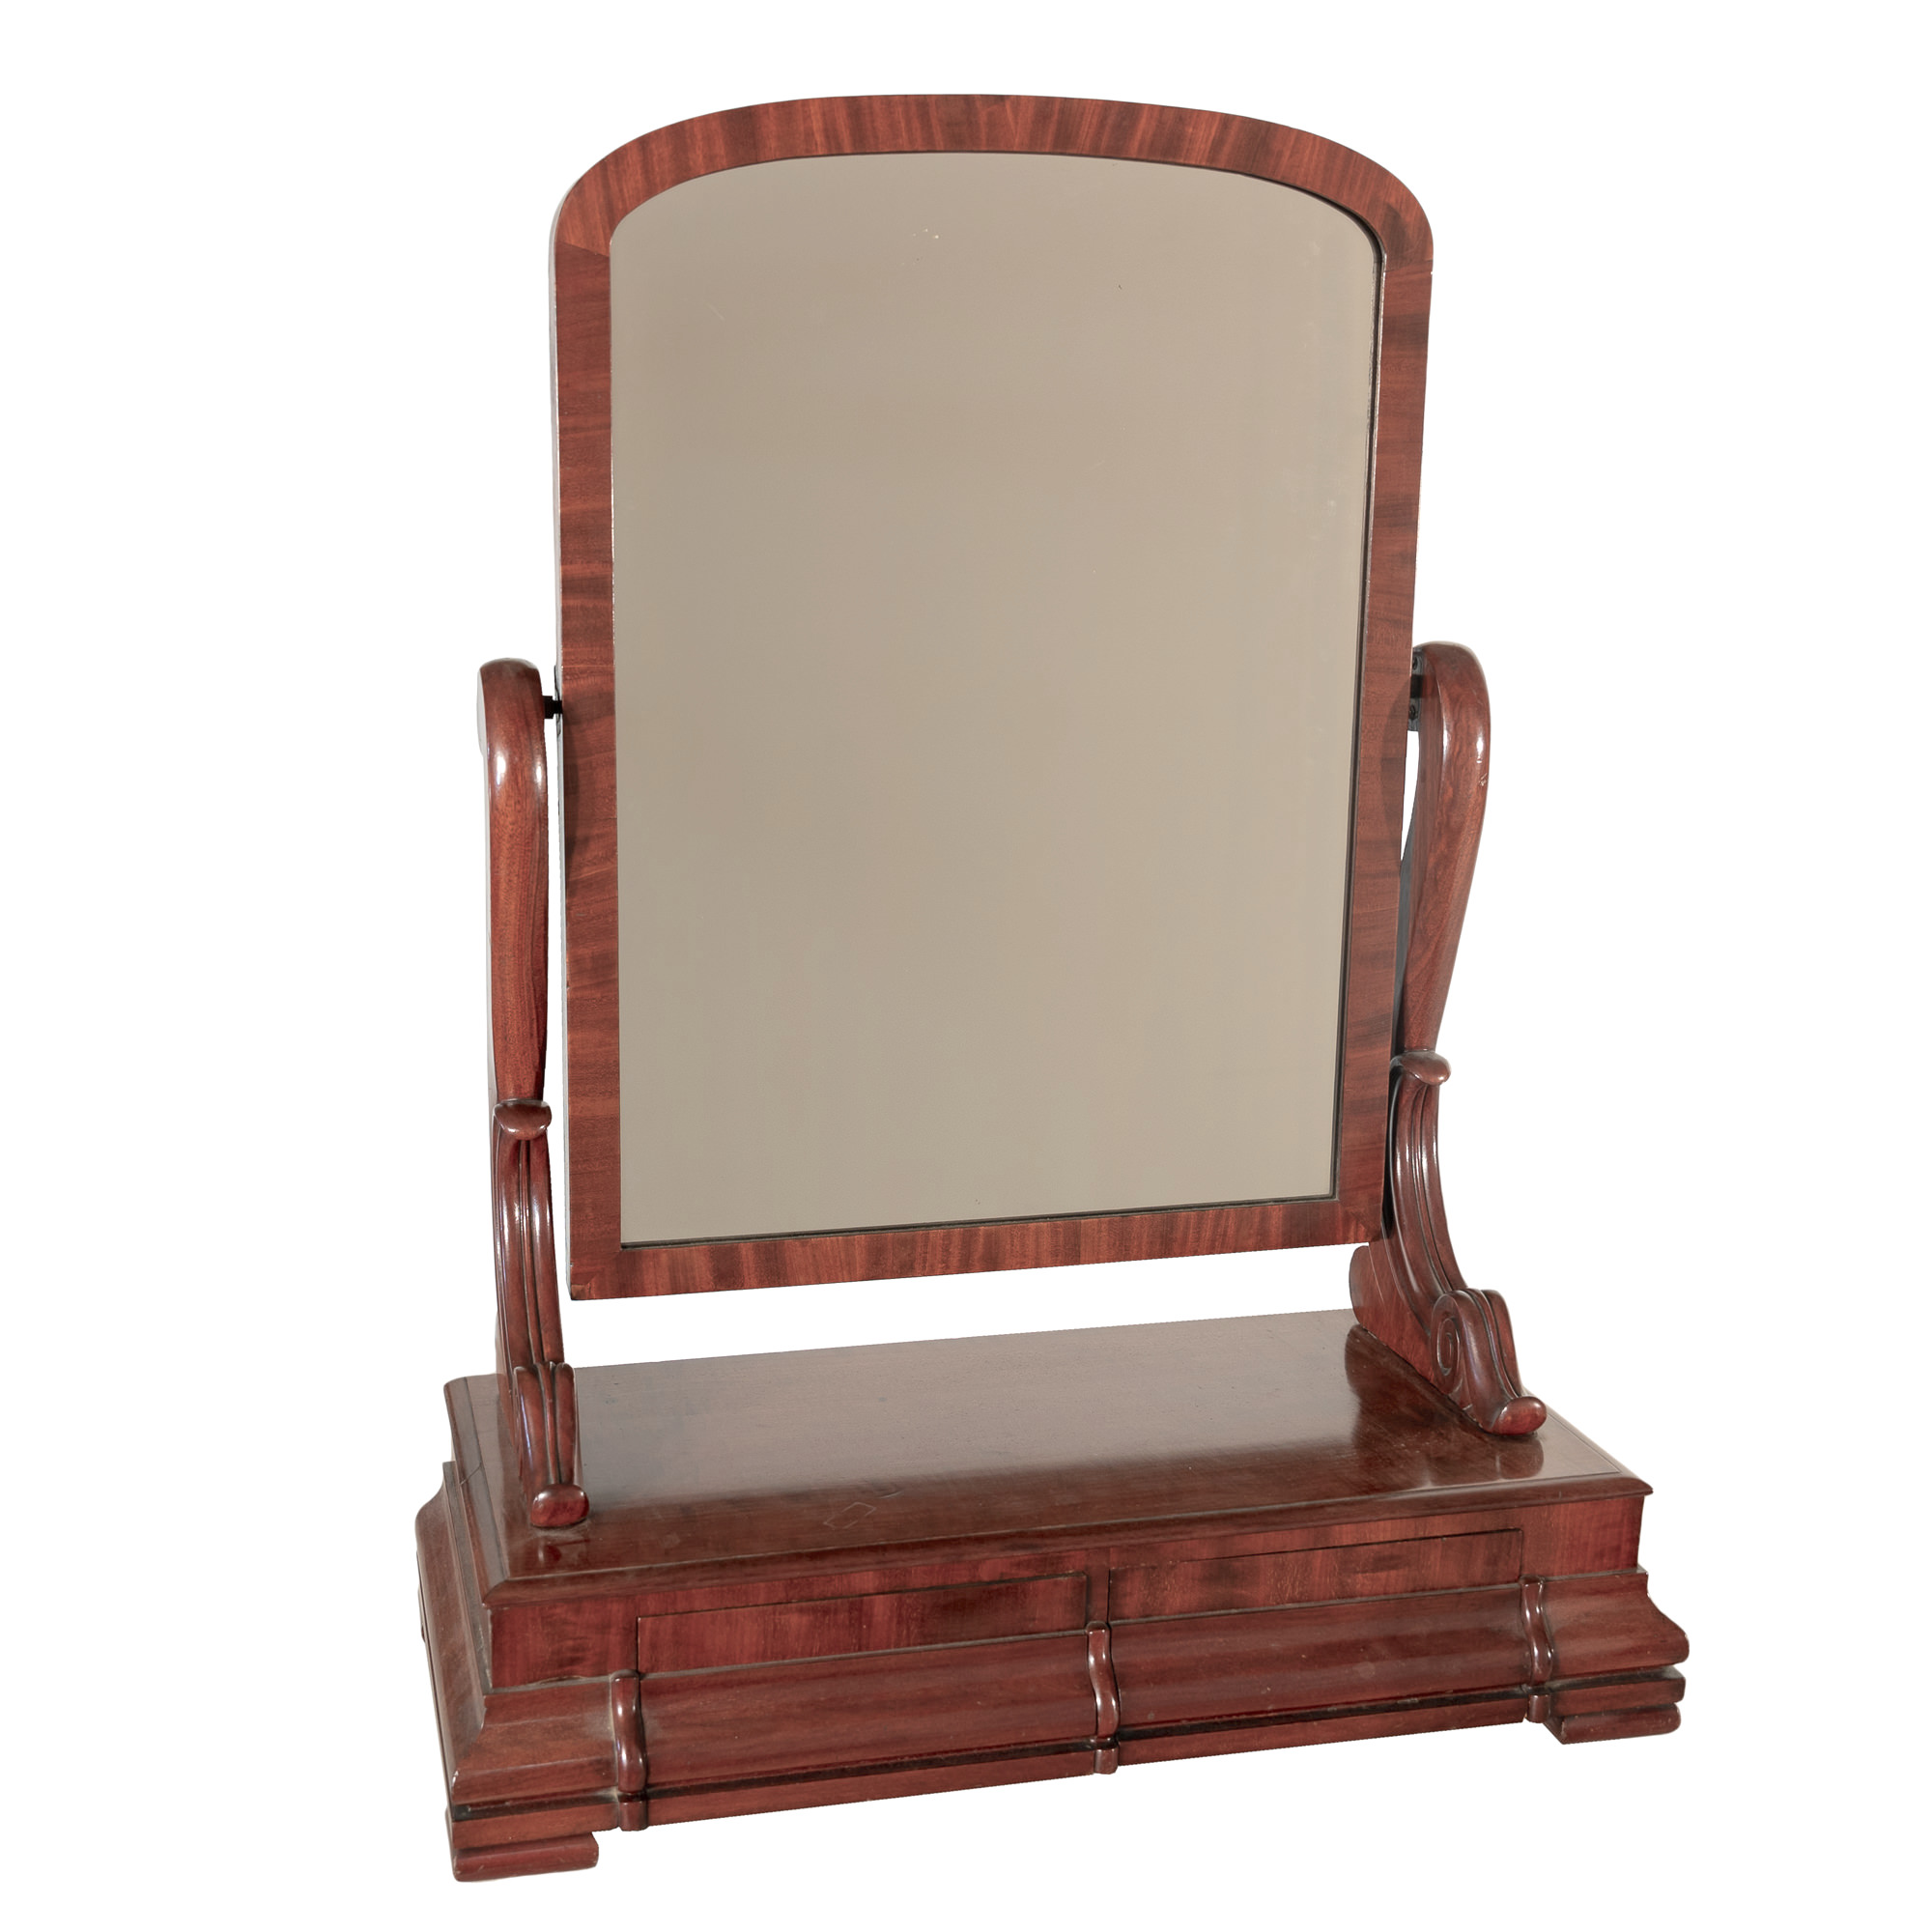 'Early Victorian Mahogany Toilet Mirror with Two Drawers Circa 1850'